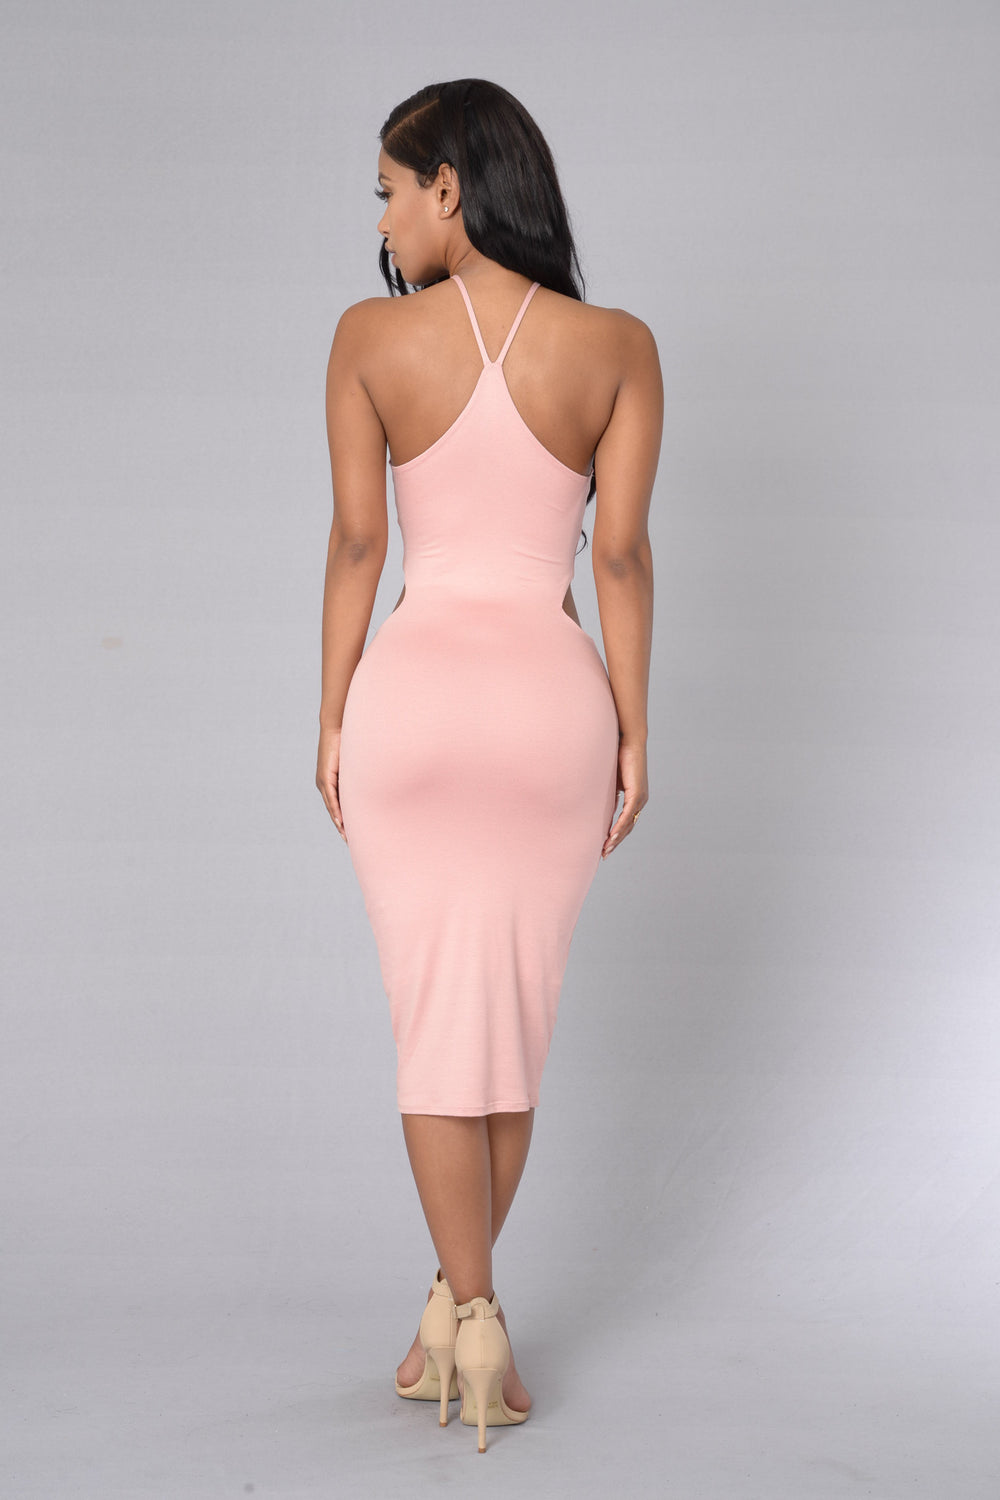 At First Sight Dress - Dusty Pink